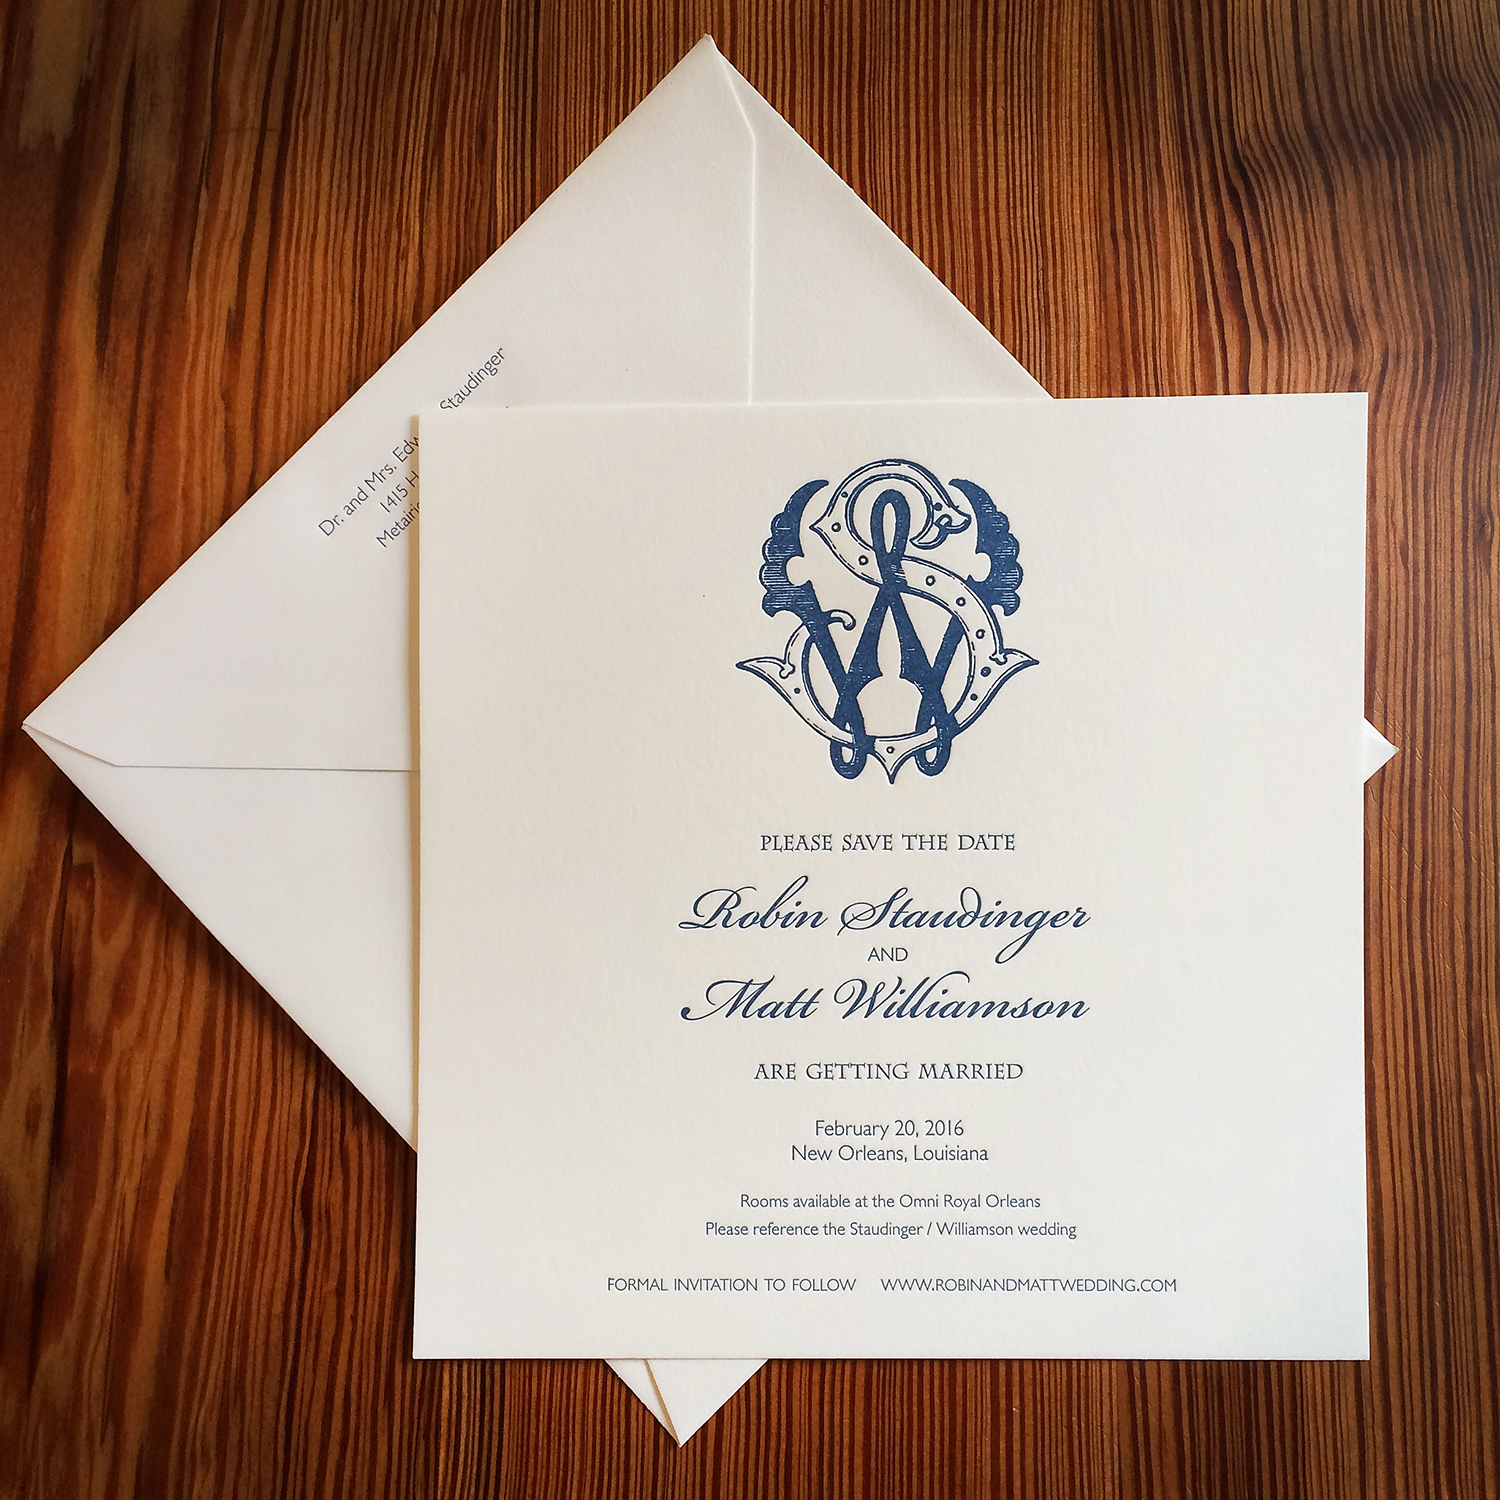 Staudinger - Letterpress - Save the Date.jpg